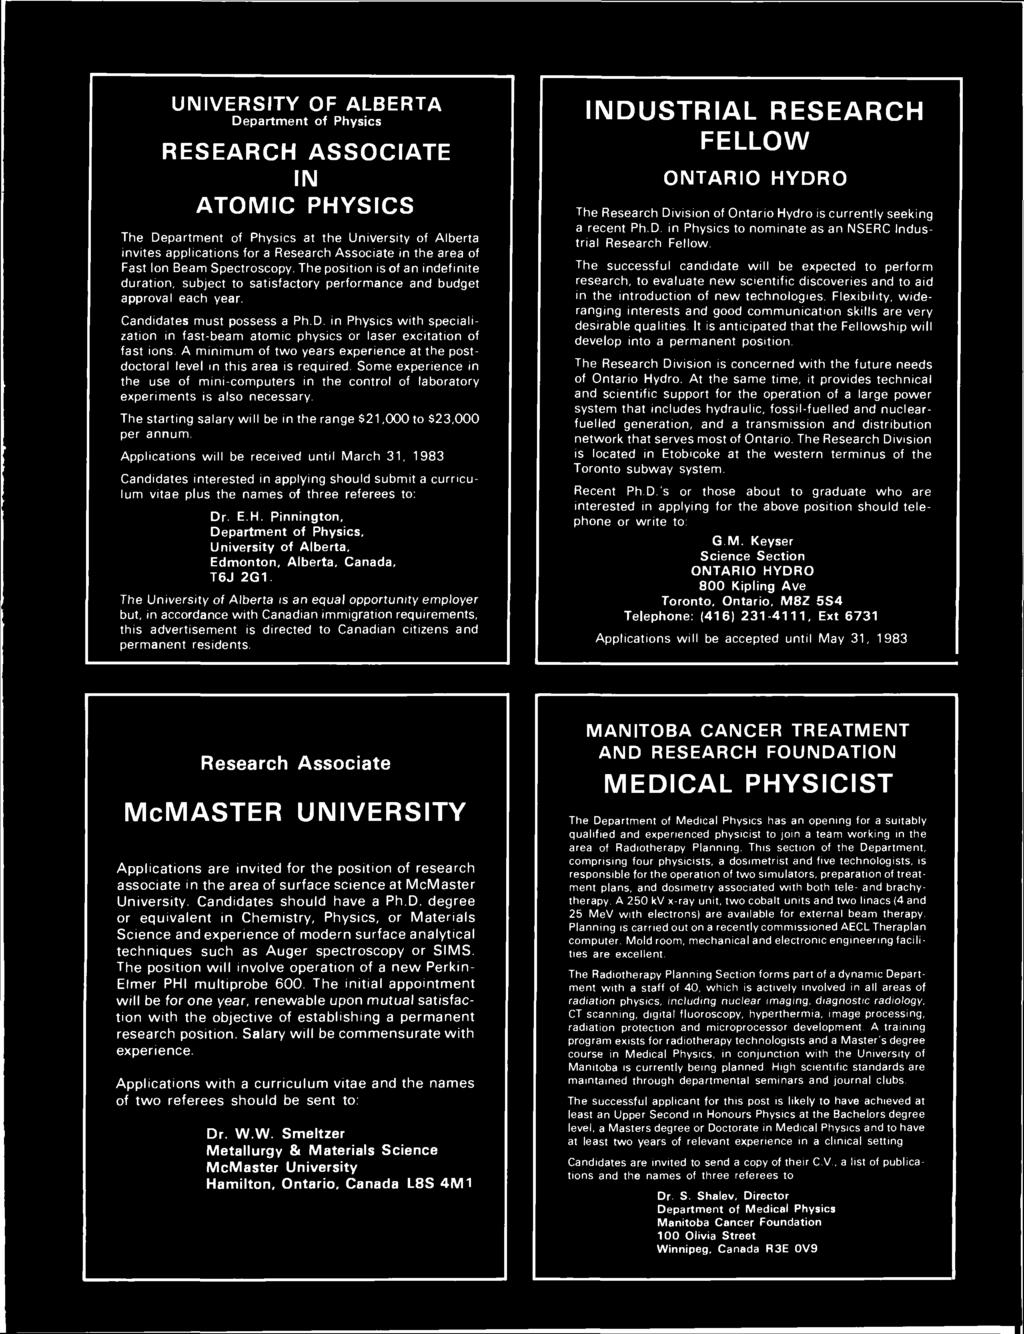 The bulletin of the canadian association of physicists vol 39 no university of alberta department of physics research associate in atomic physics the department of physics at fandeluxe Images